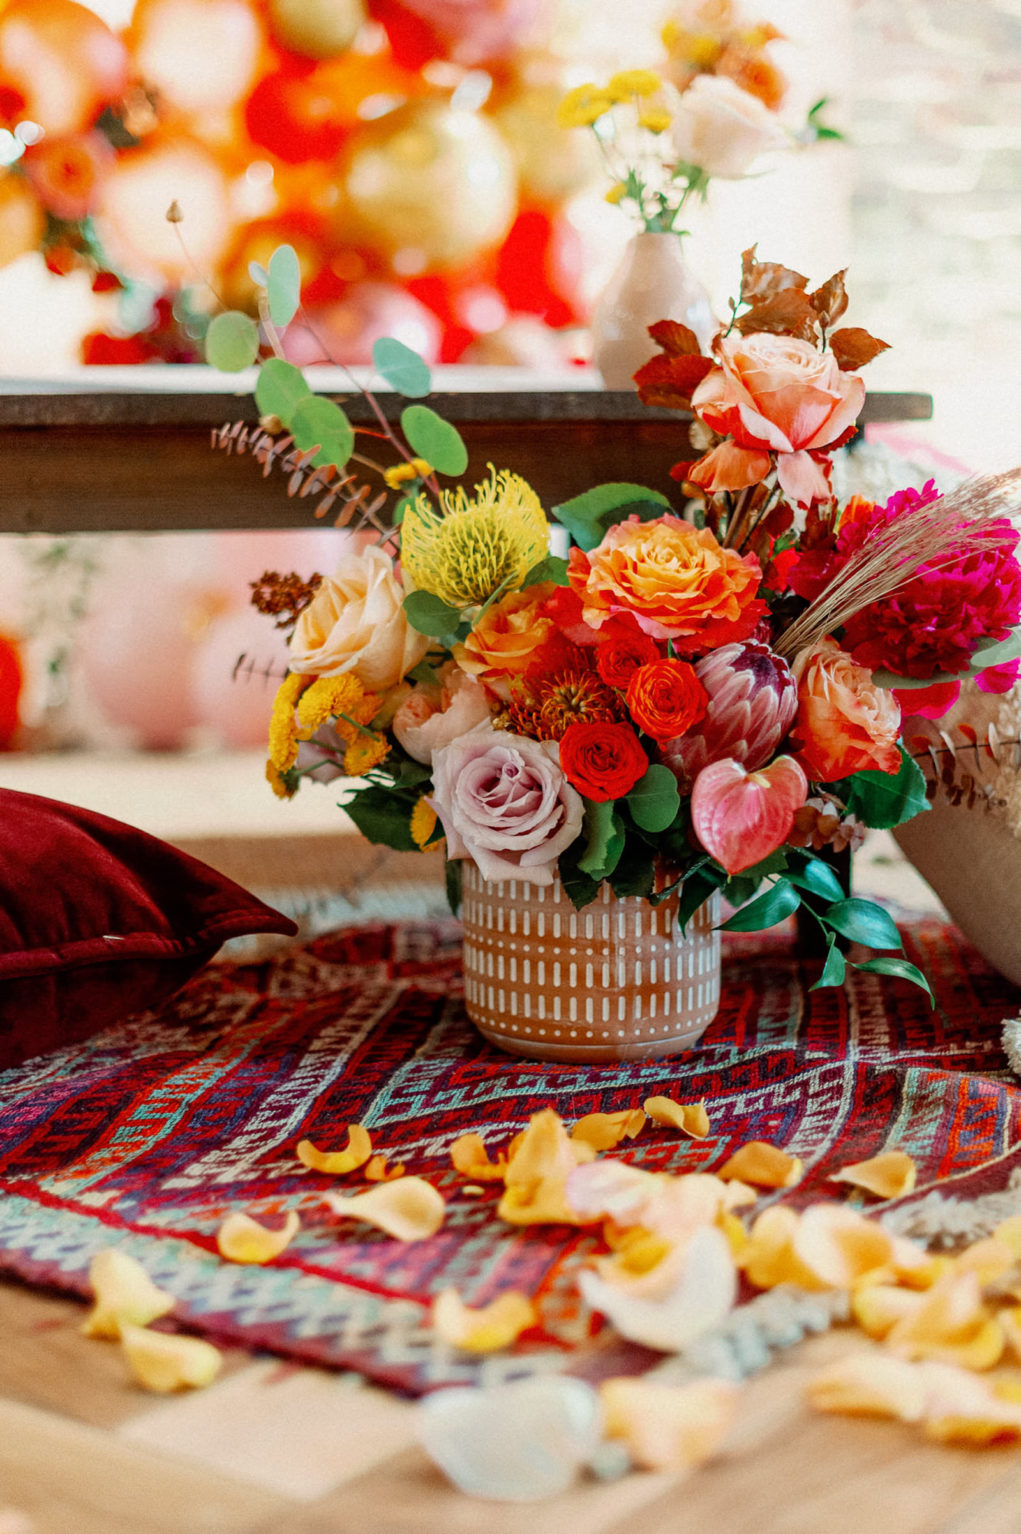 Whimsical and Colorful Wedding Reception Decor, Red Moroccan Style Rug, Blush Pink and Orange Roses, Yellow Pincushion Protea, Pink King Protea, Eucalyptus, Orange Flowers, Pink Anthurium, Yellow Rose Petals   Tampa Bay Wedding Photographer Dewitt for Love